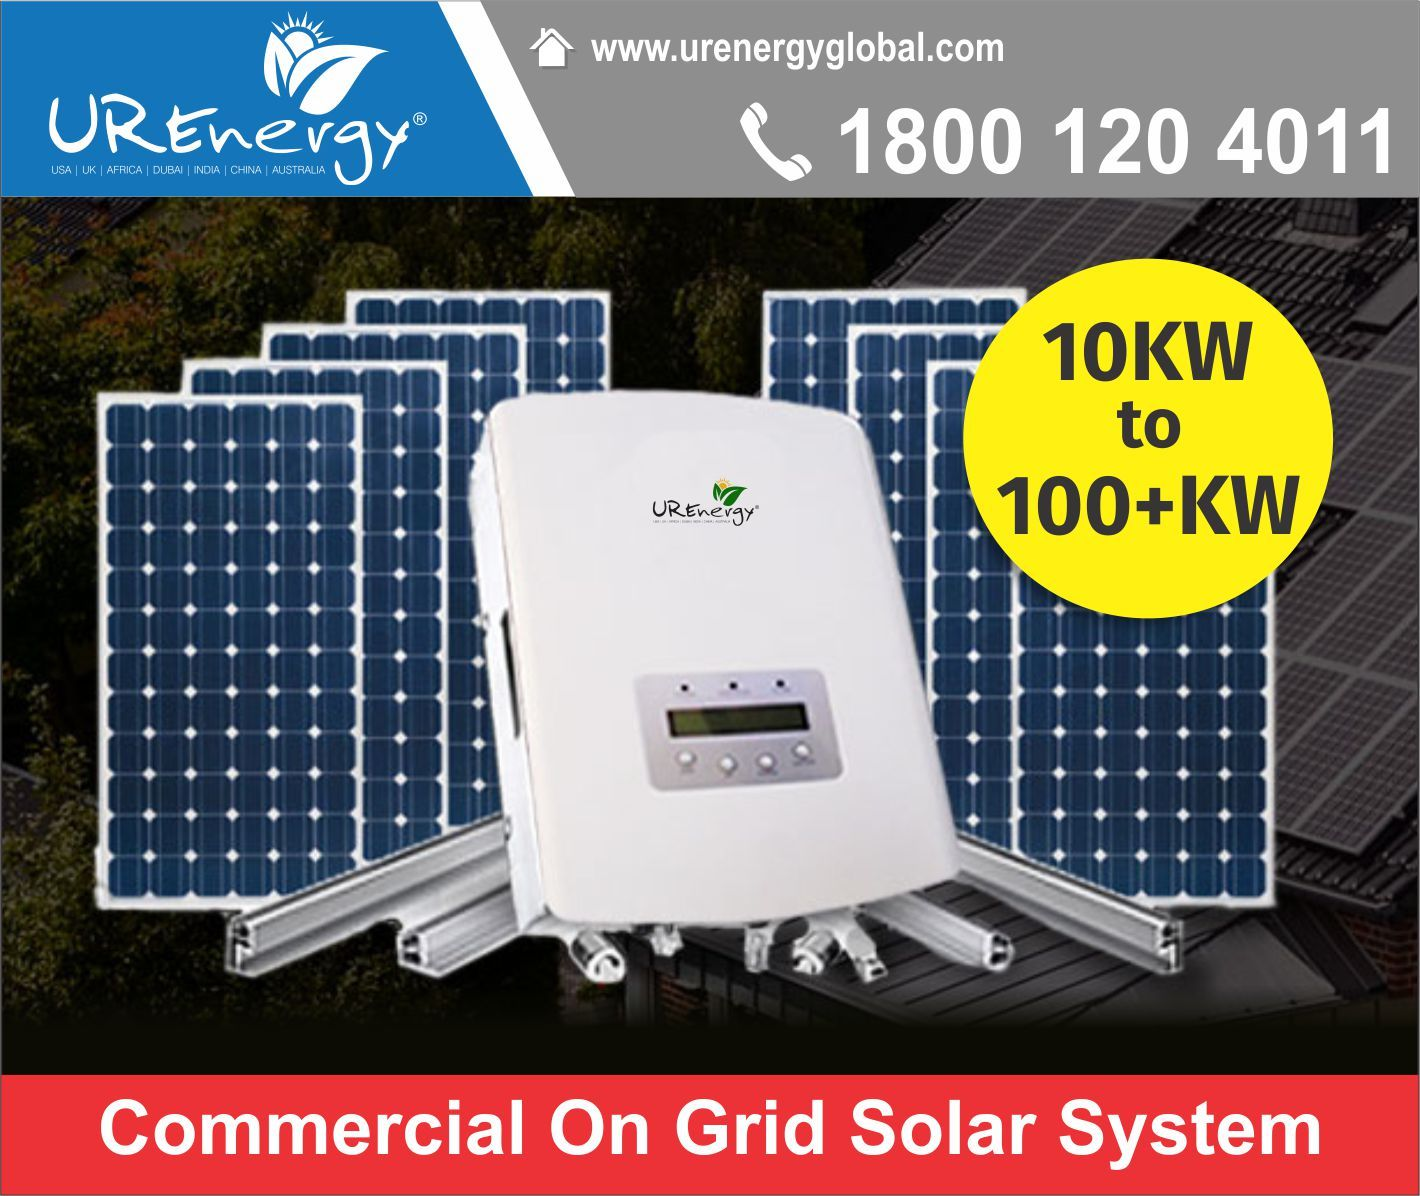 Rooftop Solar Panel Inverters Water Pump Solar Epc Gujarat India U R Energy On Grid Solar System Solar Panel System Solar